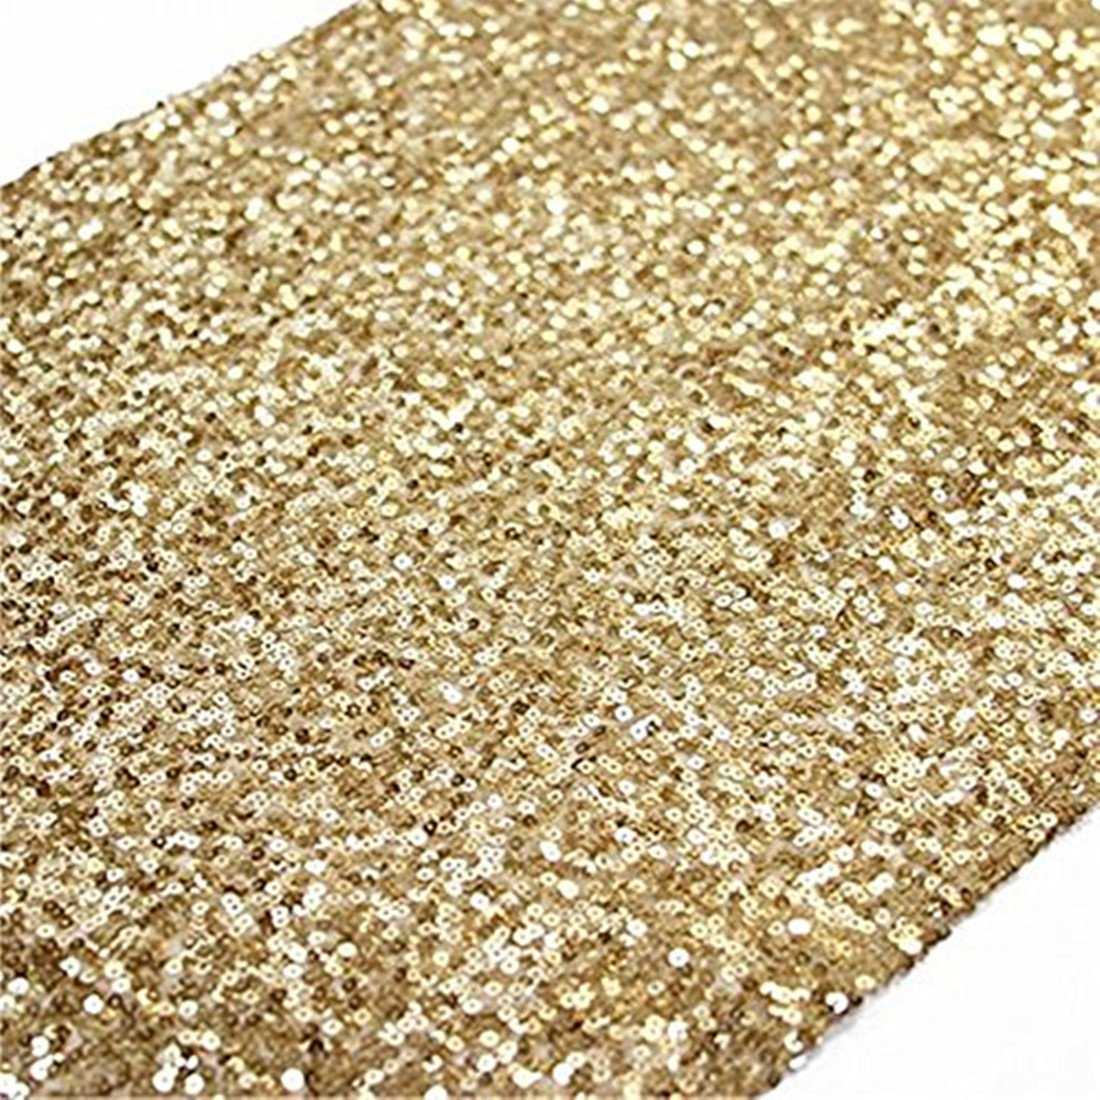 TRLYC 14X108-Inch Real Rose Gold Sequins Tablecloths with Wedding,various Sizes